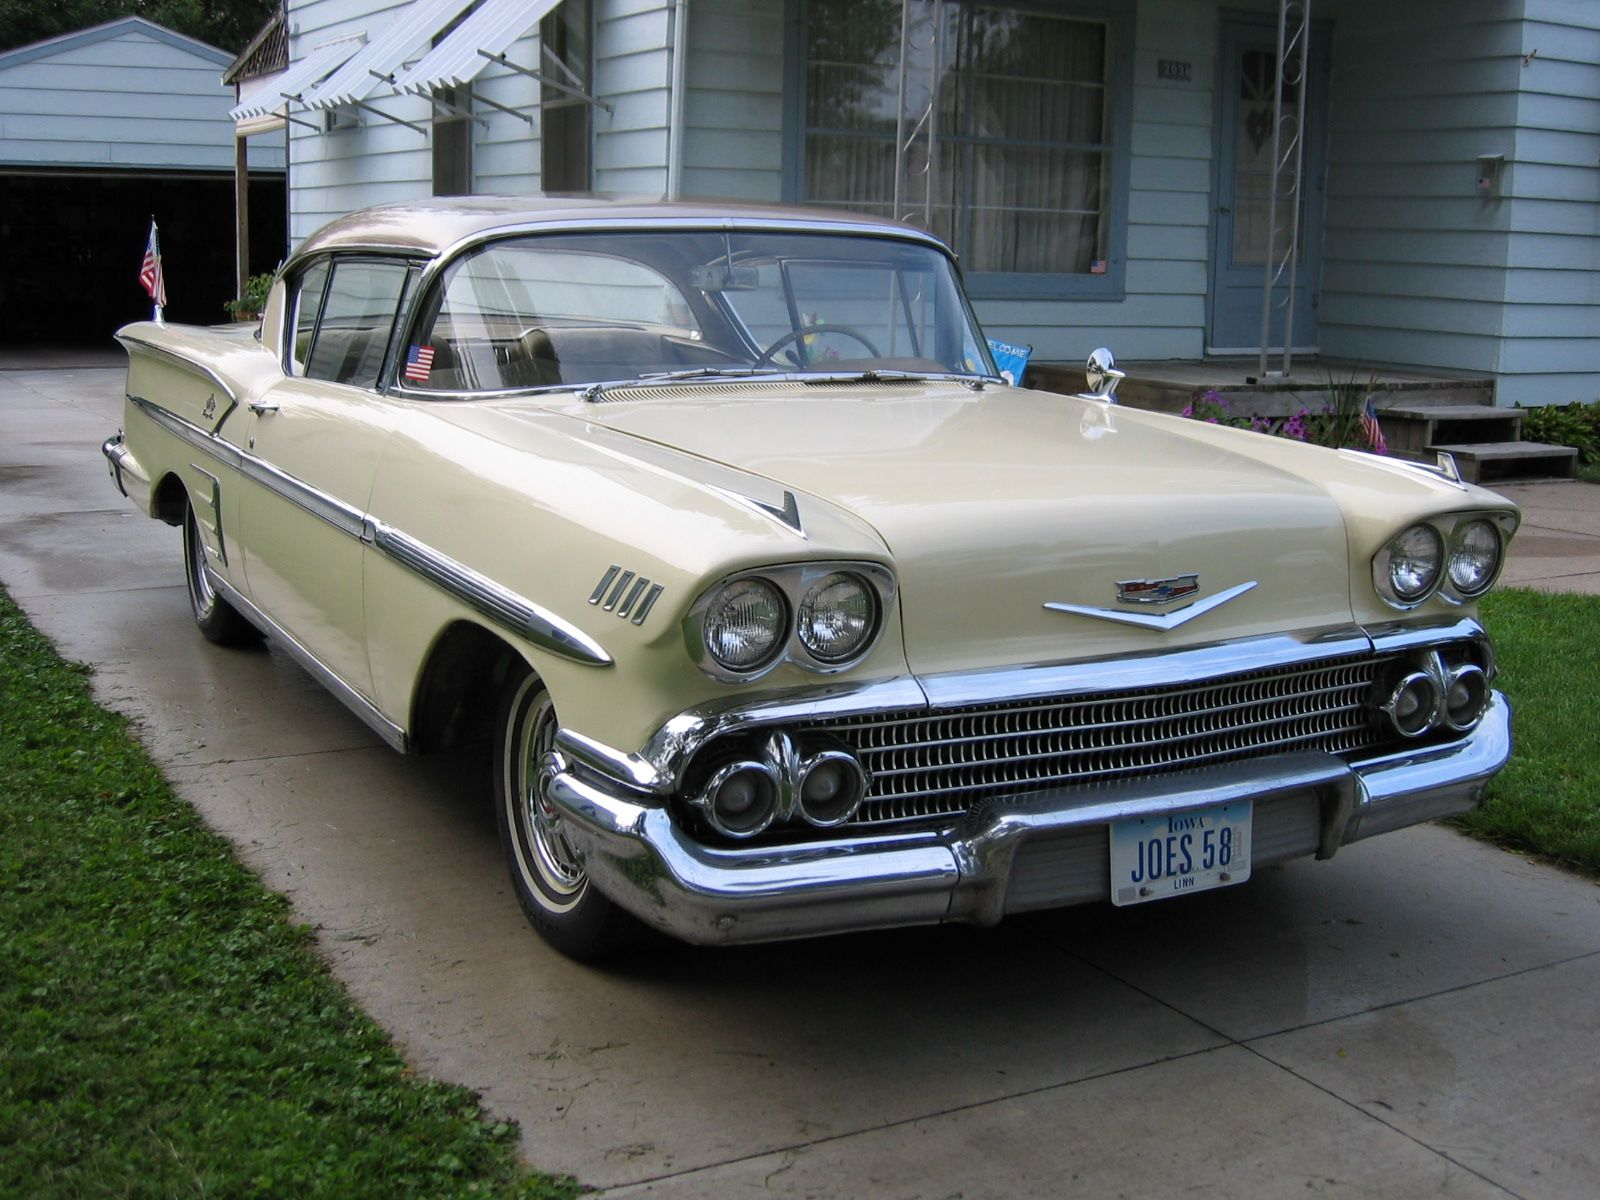 Image Detail For File 1958 Chevrolet Impala Jpg Wikipedia The